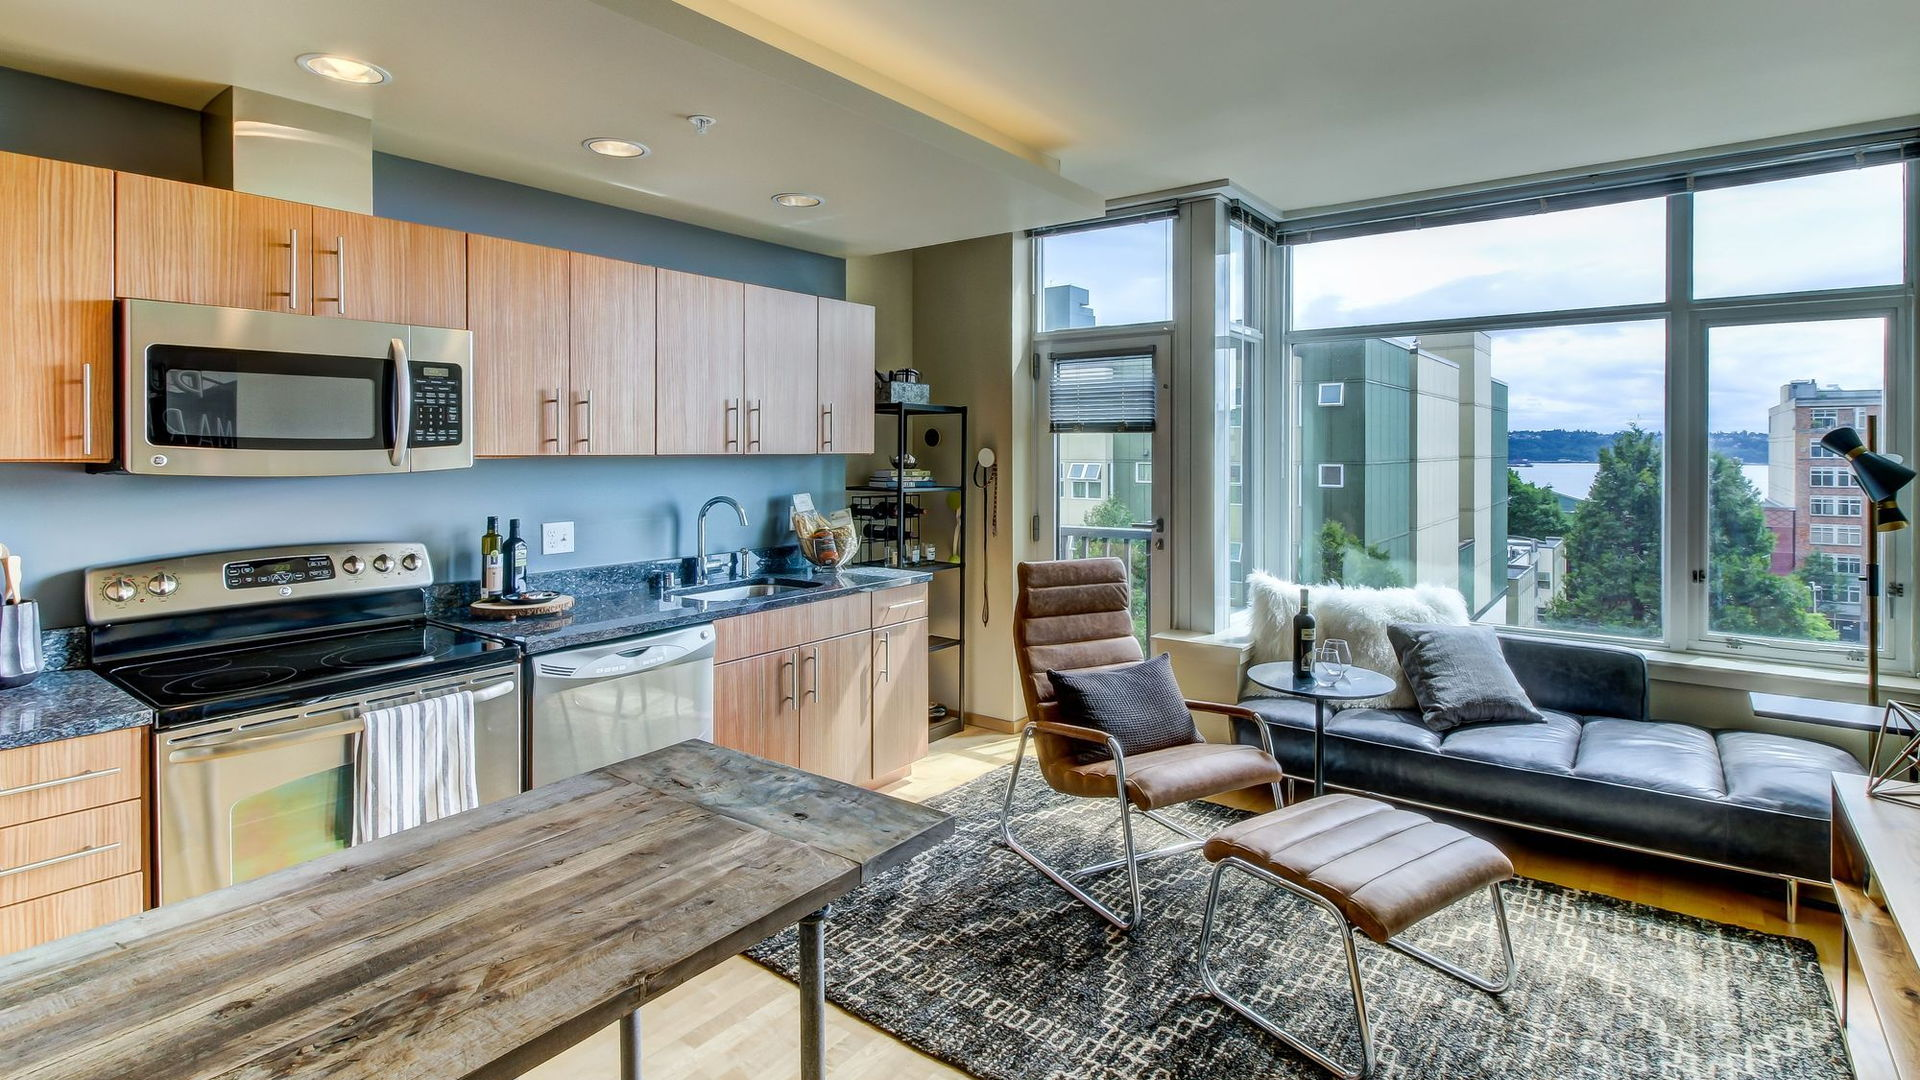 Brilliant 1121 Apartments For Rent In Seattle Wa Apartmentratingsc Download Free Architecture Designs Embacsunscenecom